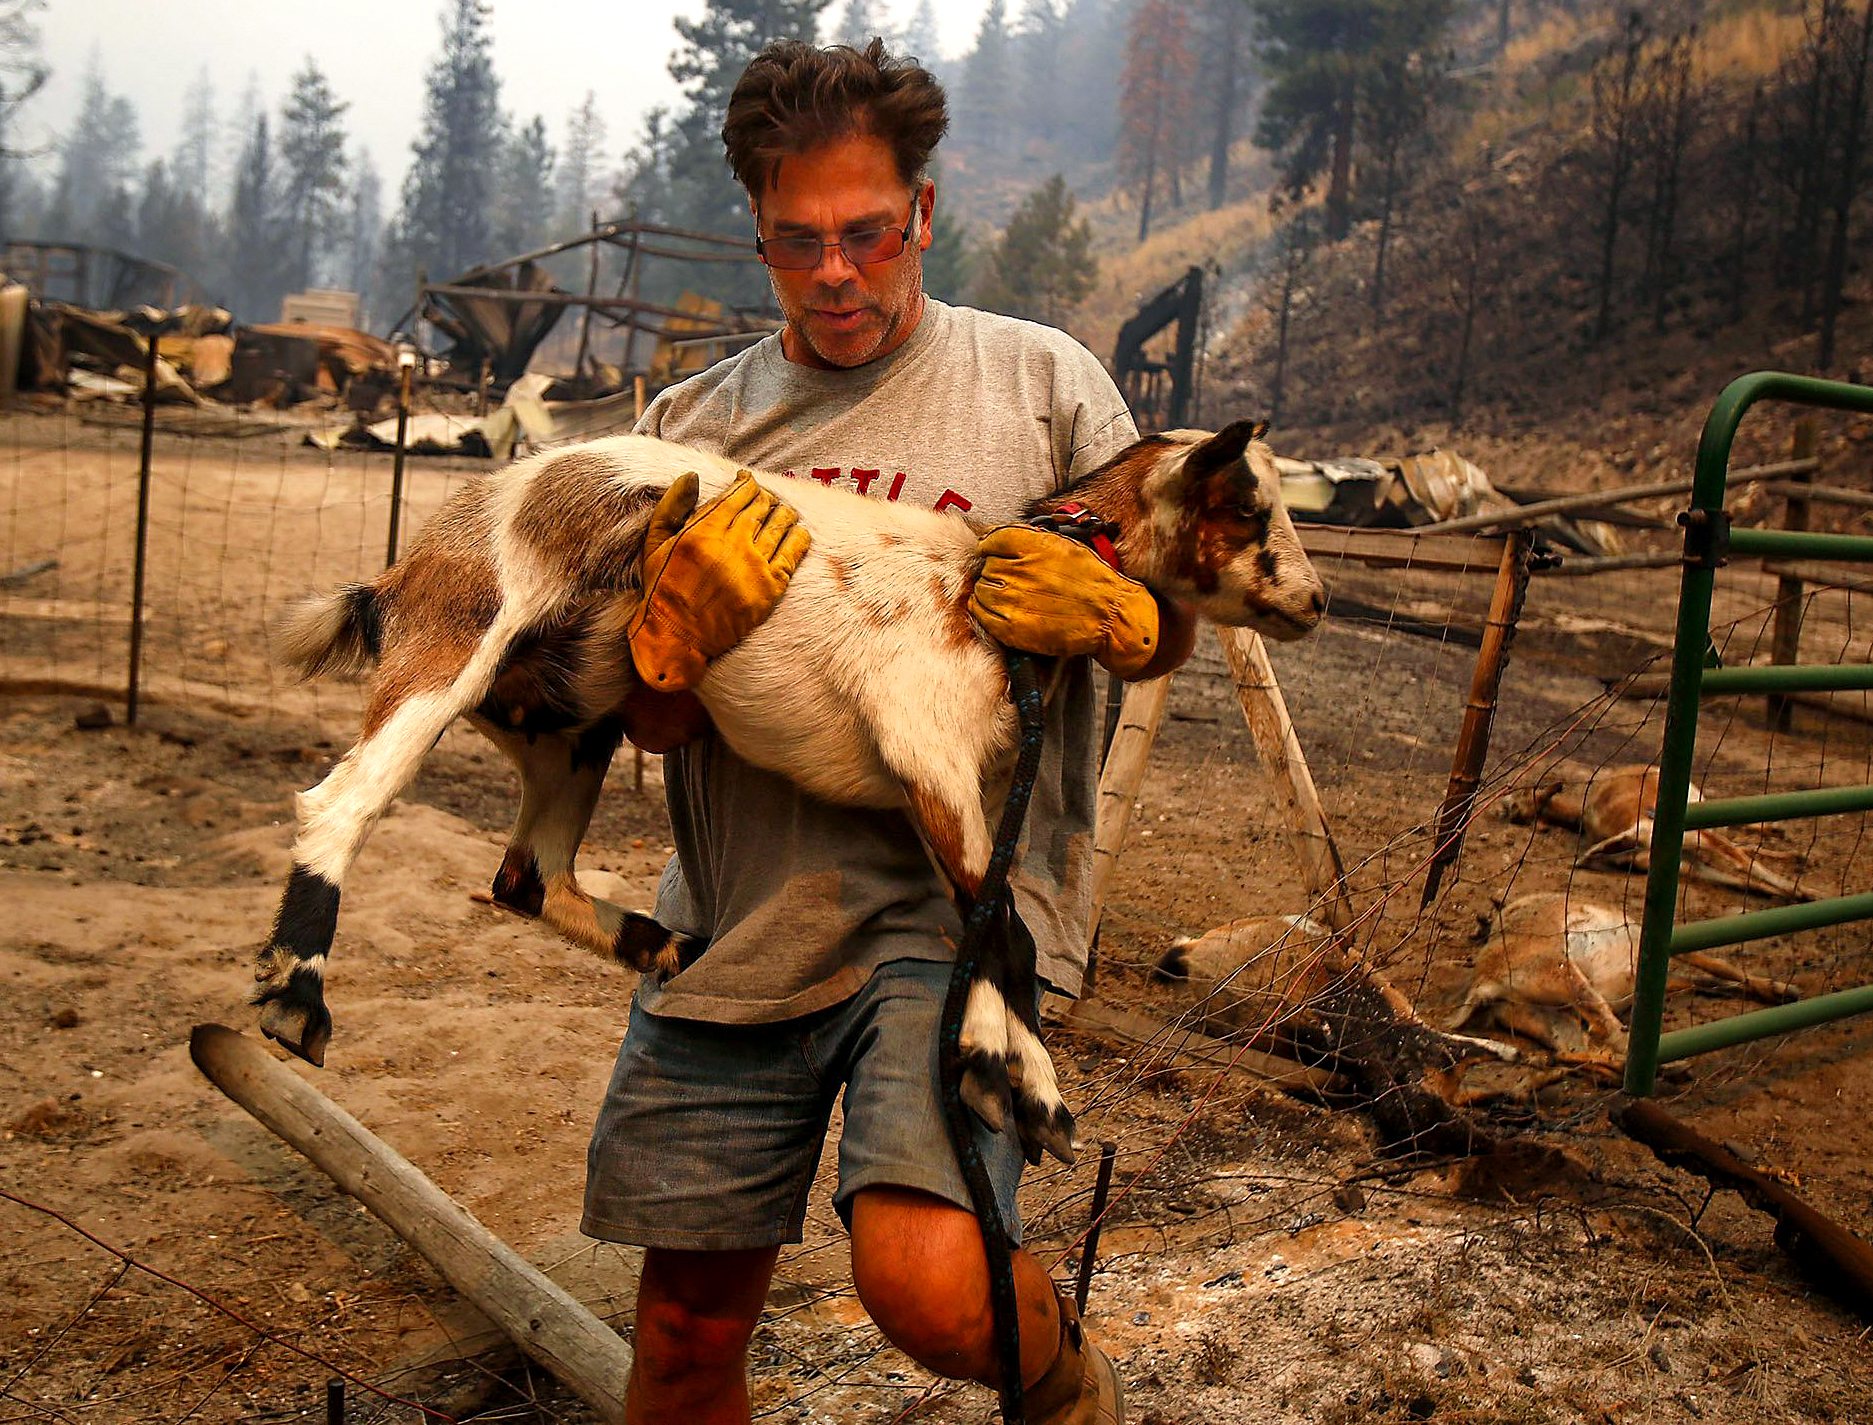 Todd Quinn grabs his only surviving goat that survived the firestorm that swept through his ranch Friday night, on Saturday, Aug. 15, 2015.